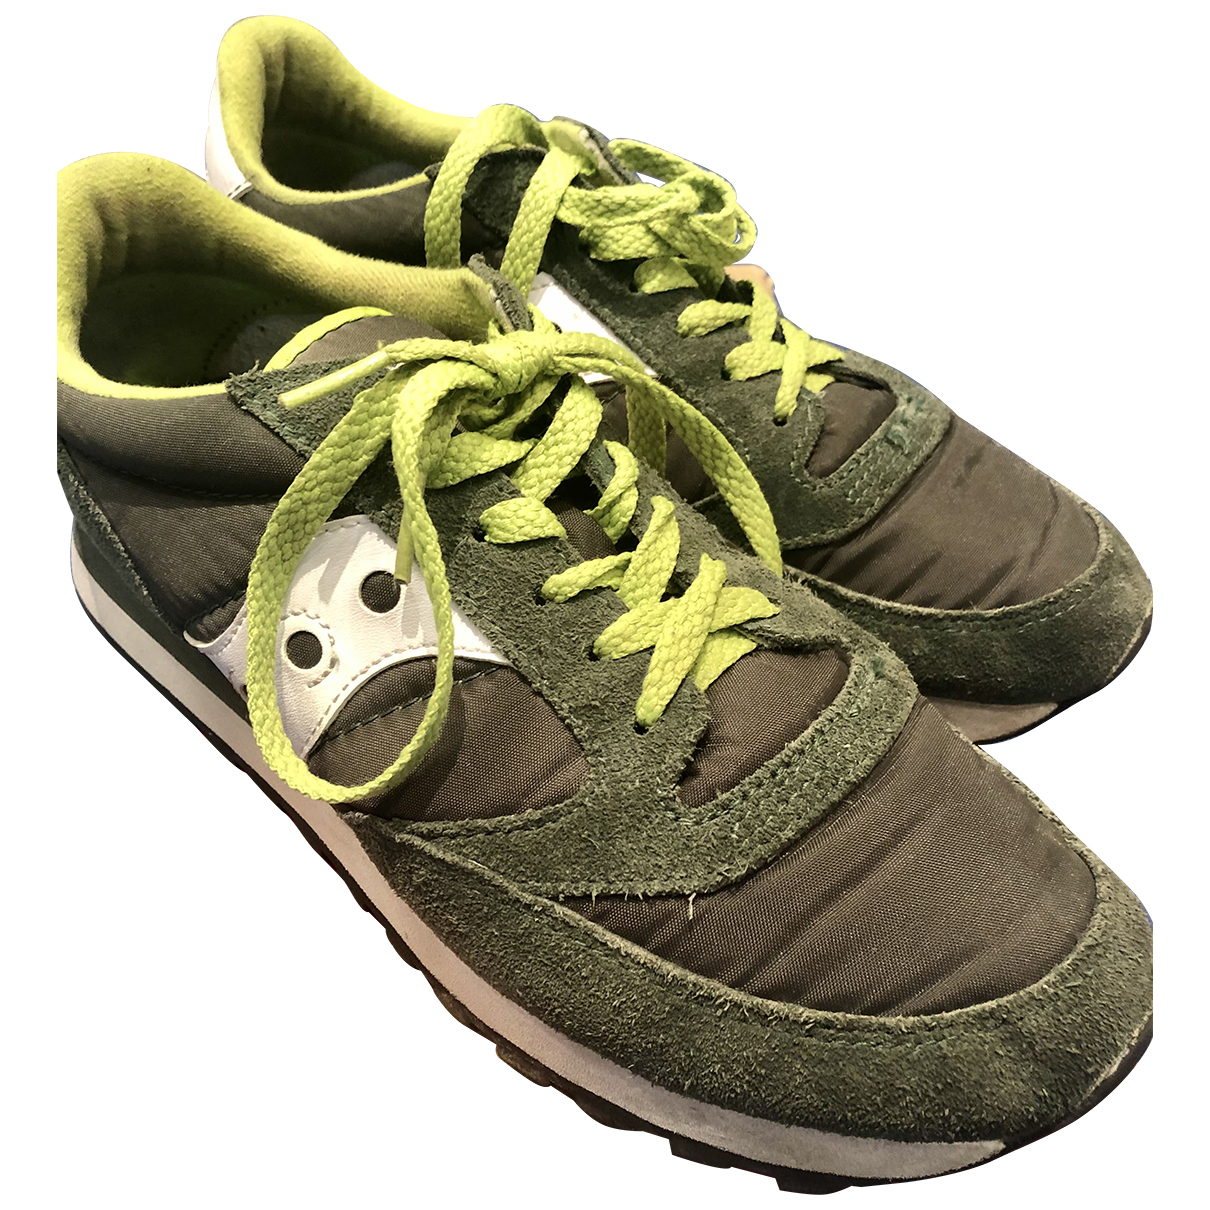 Saucony N Green Cloth Trainers for Women 40.5 EU